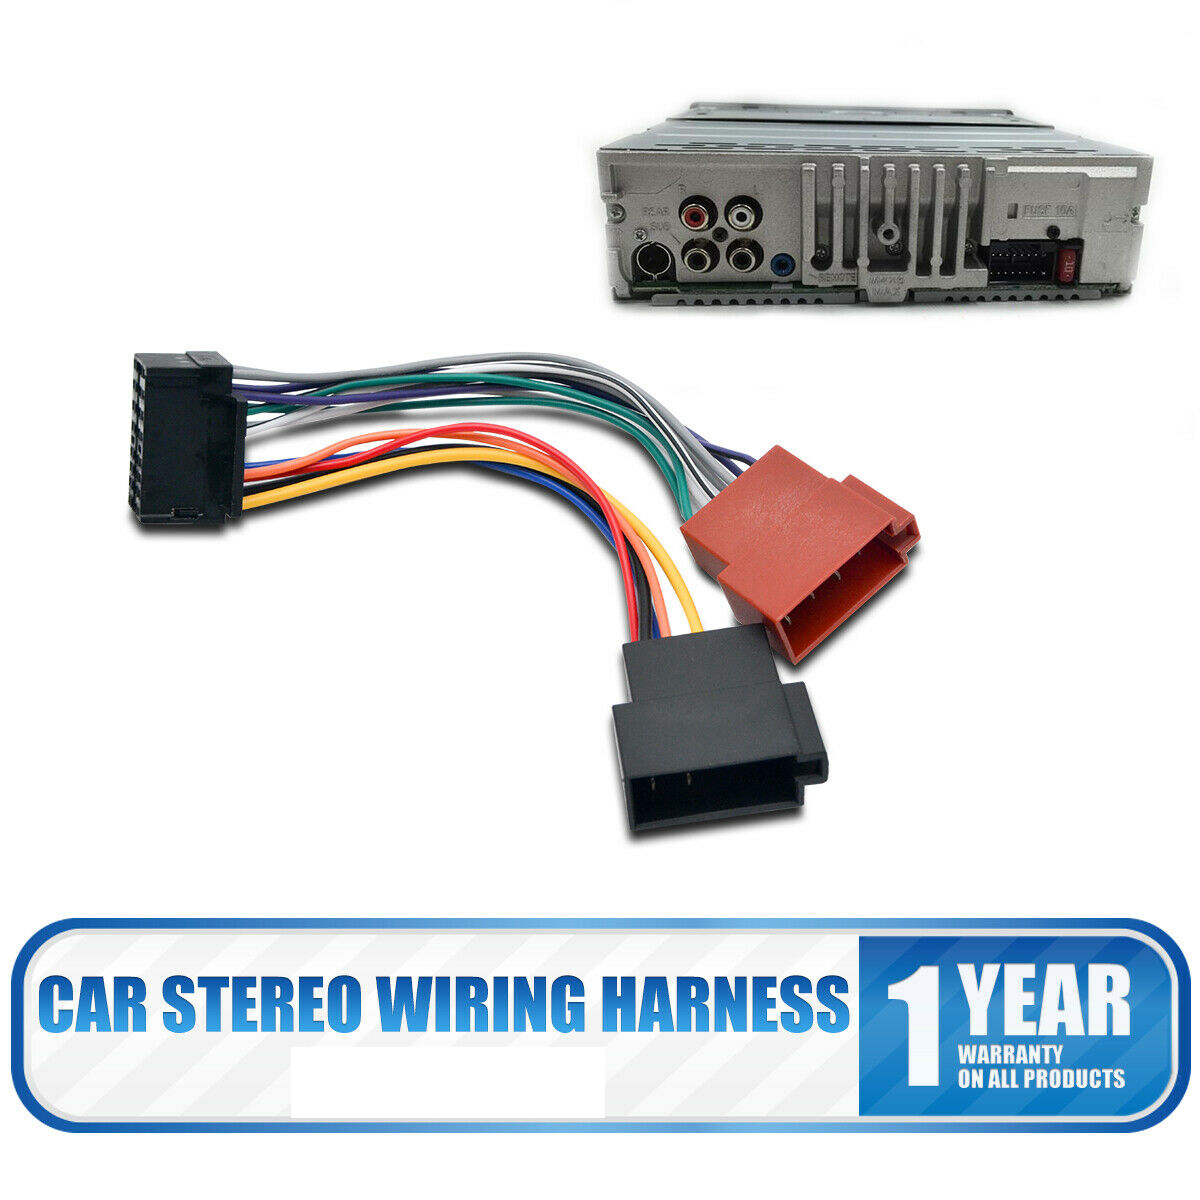 PC2-16-4 ISO to DIN Car Stereo Radio Harness Adaptor Wire ... on